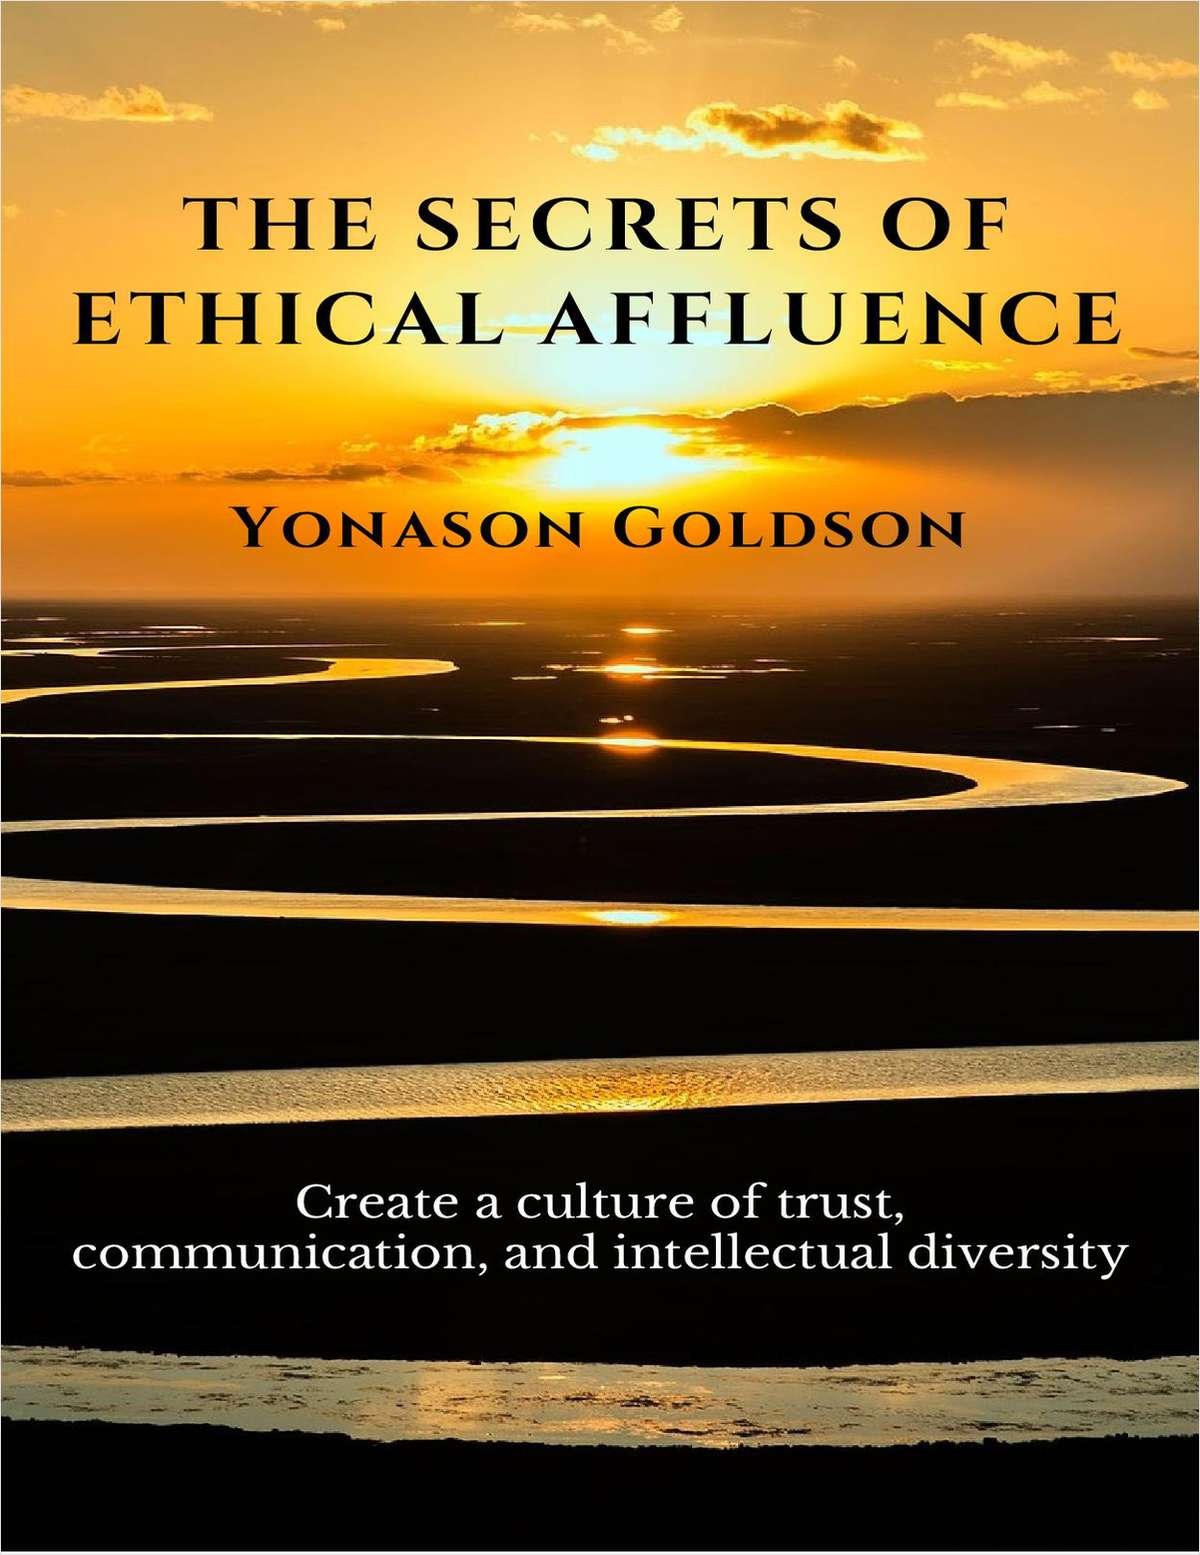 The Secrets of Ethical Affluence